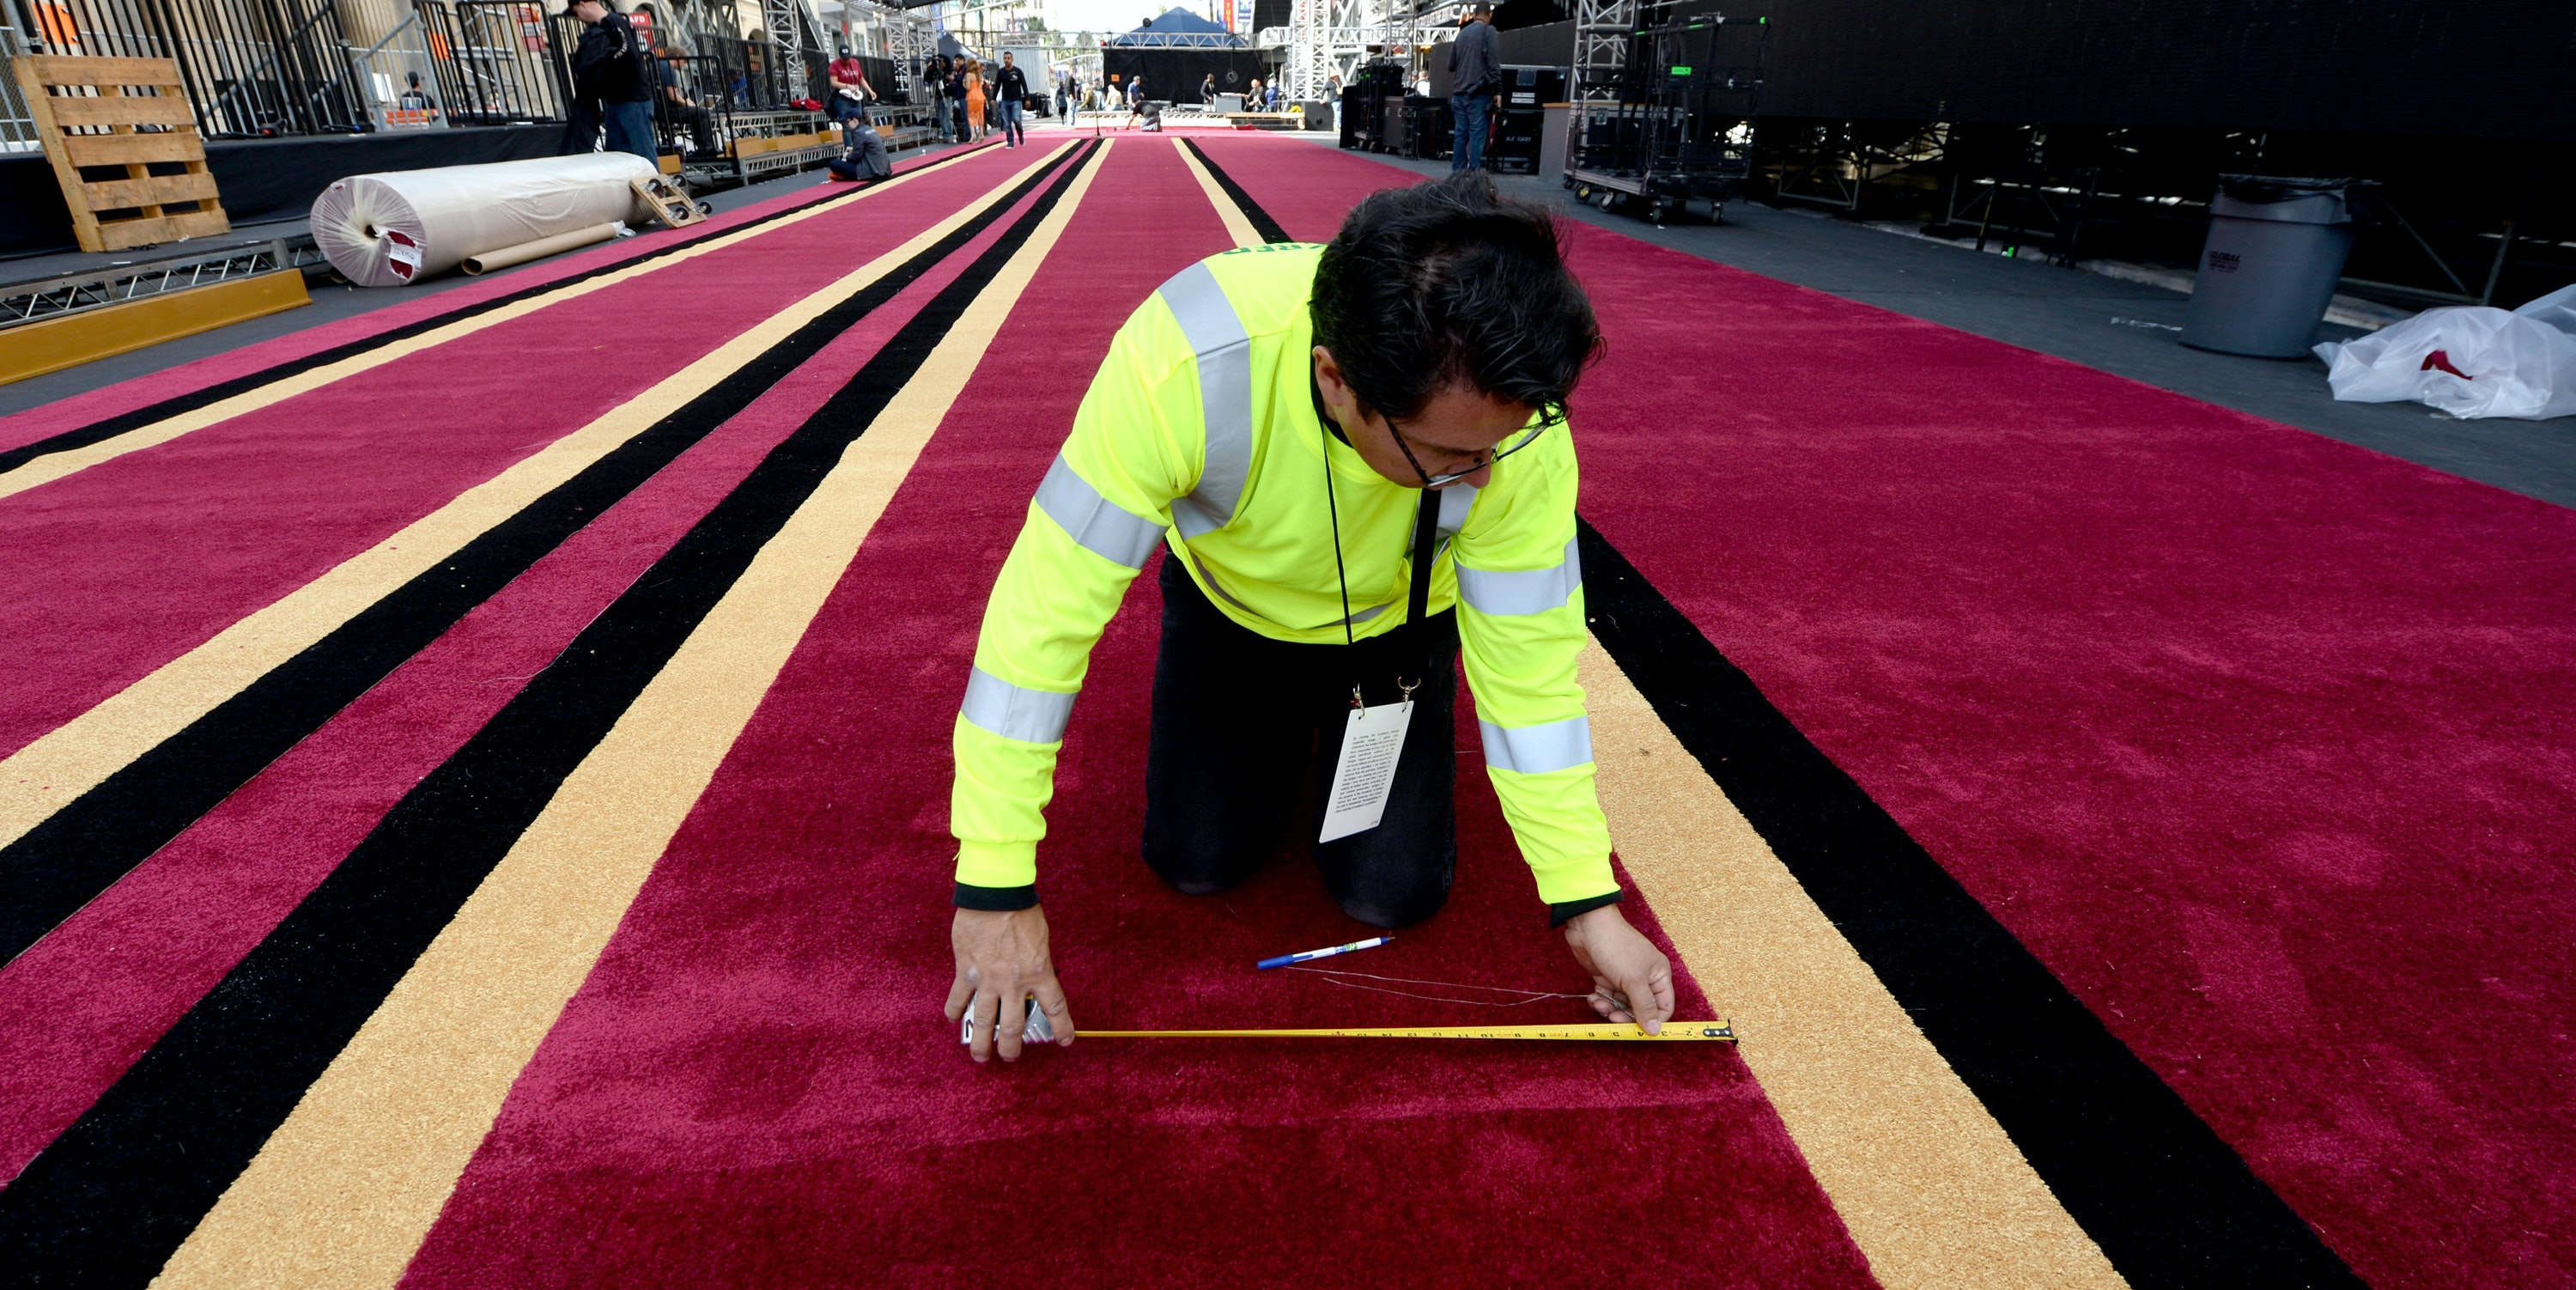 LOS ANGELES, CA - FEBRUARY 22:  The red carpet is rolled out as preparations continue for the 89th Academy Awards at Hollywood and Highland Center on February 22, 2017 in Los Angeles, California.  (Photo by Kevork Djansezian/Getty Images)